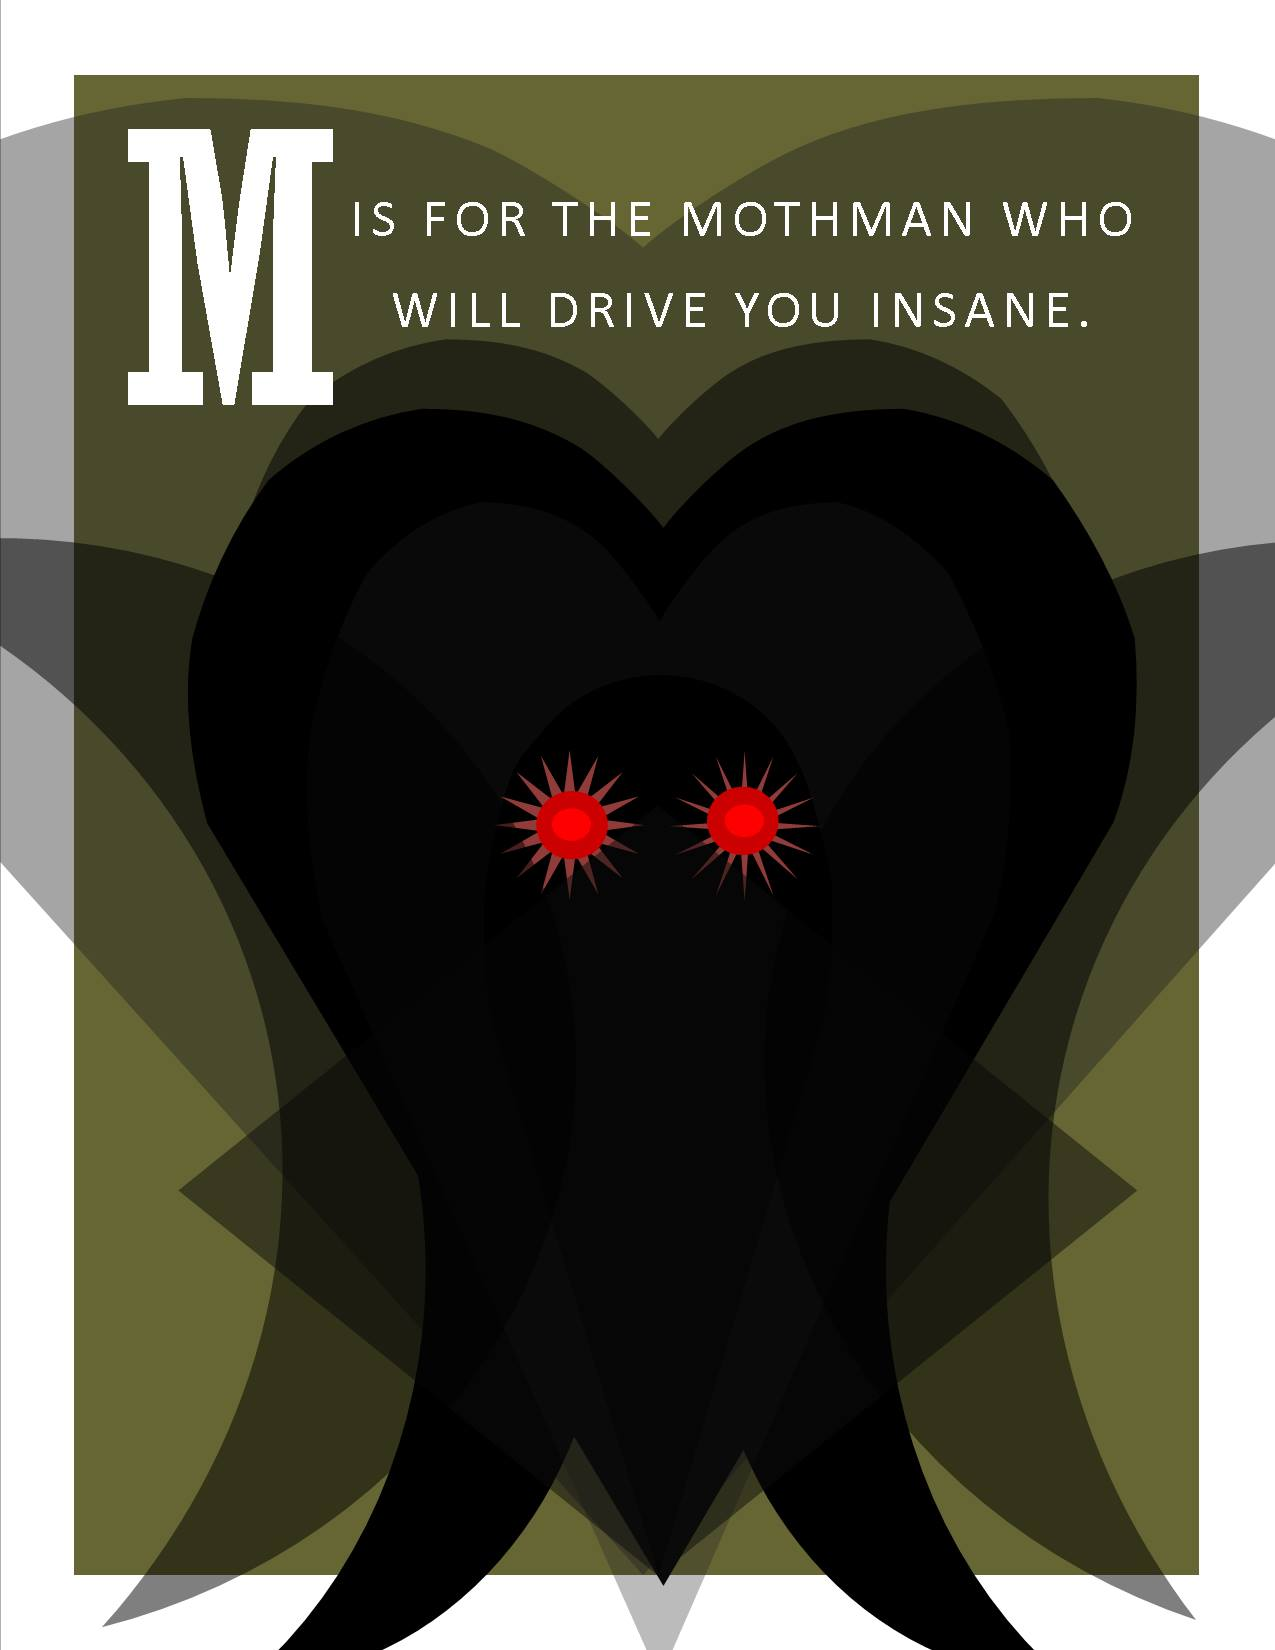 M is for the Mothman who will Drive You Insane.